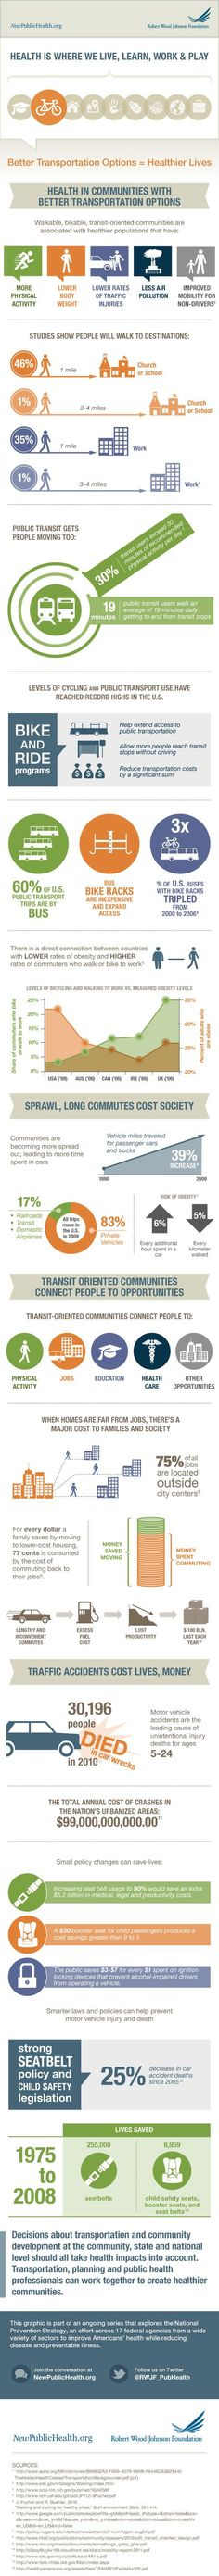 health-in-communities-with-better-transportation-options_50798ced756e4